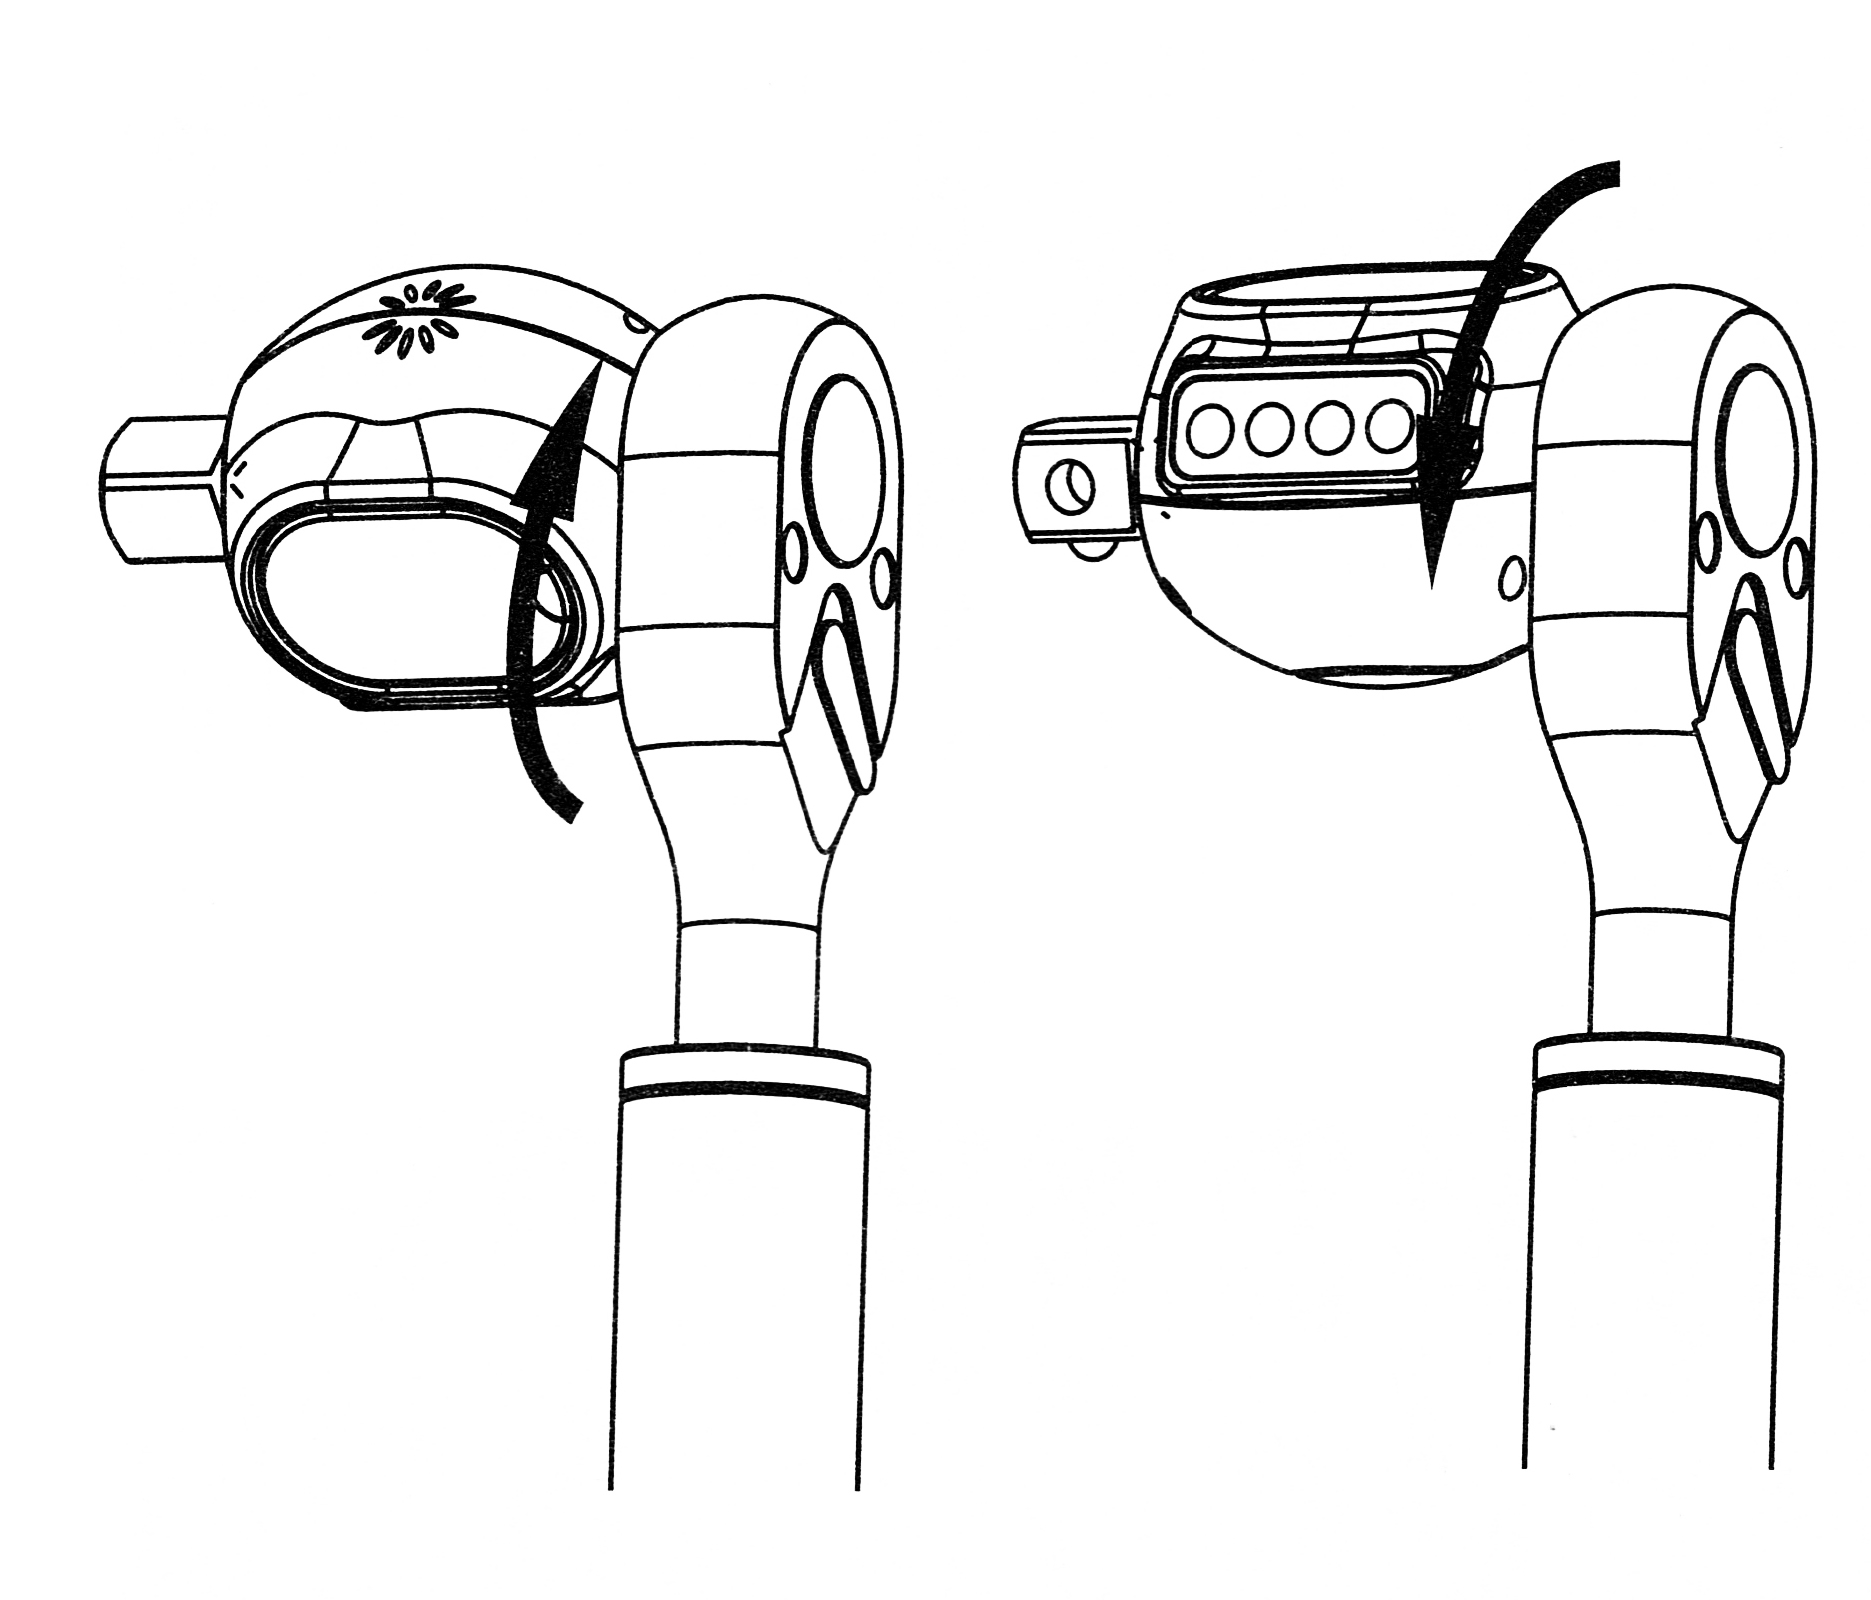 THE DISPLAY HOUSING WILL ROTATE AROUND THE SHAFT.  YOU HAVE NOT BROKEN ANYTHING.  THIS LETSYOU SEE THE DISPLAY BETTER.